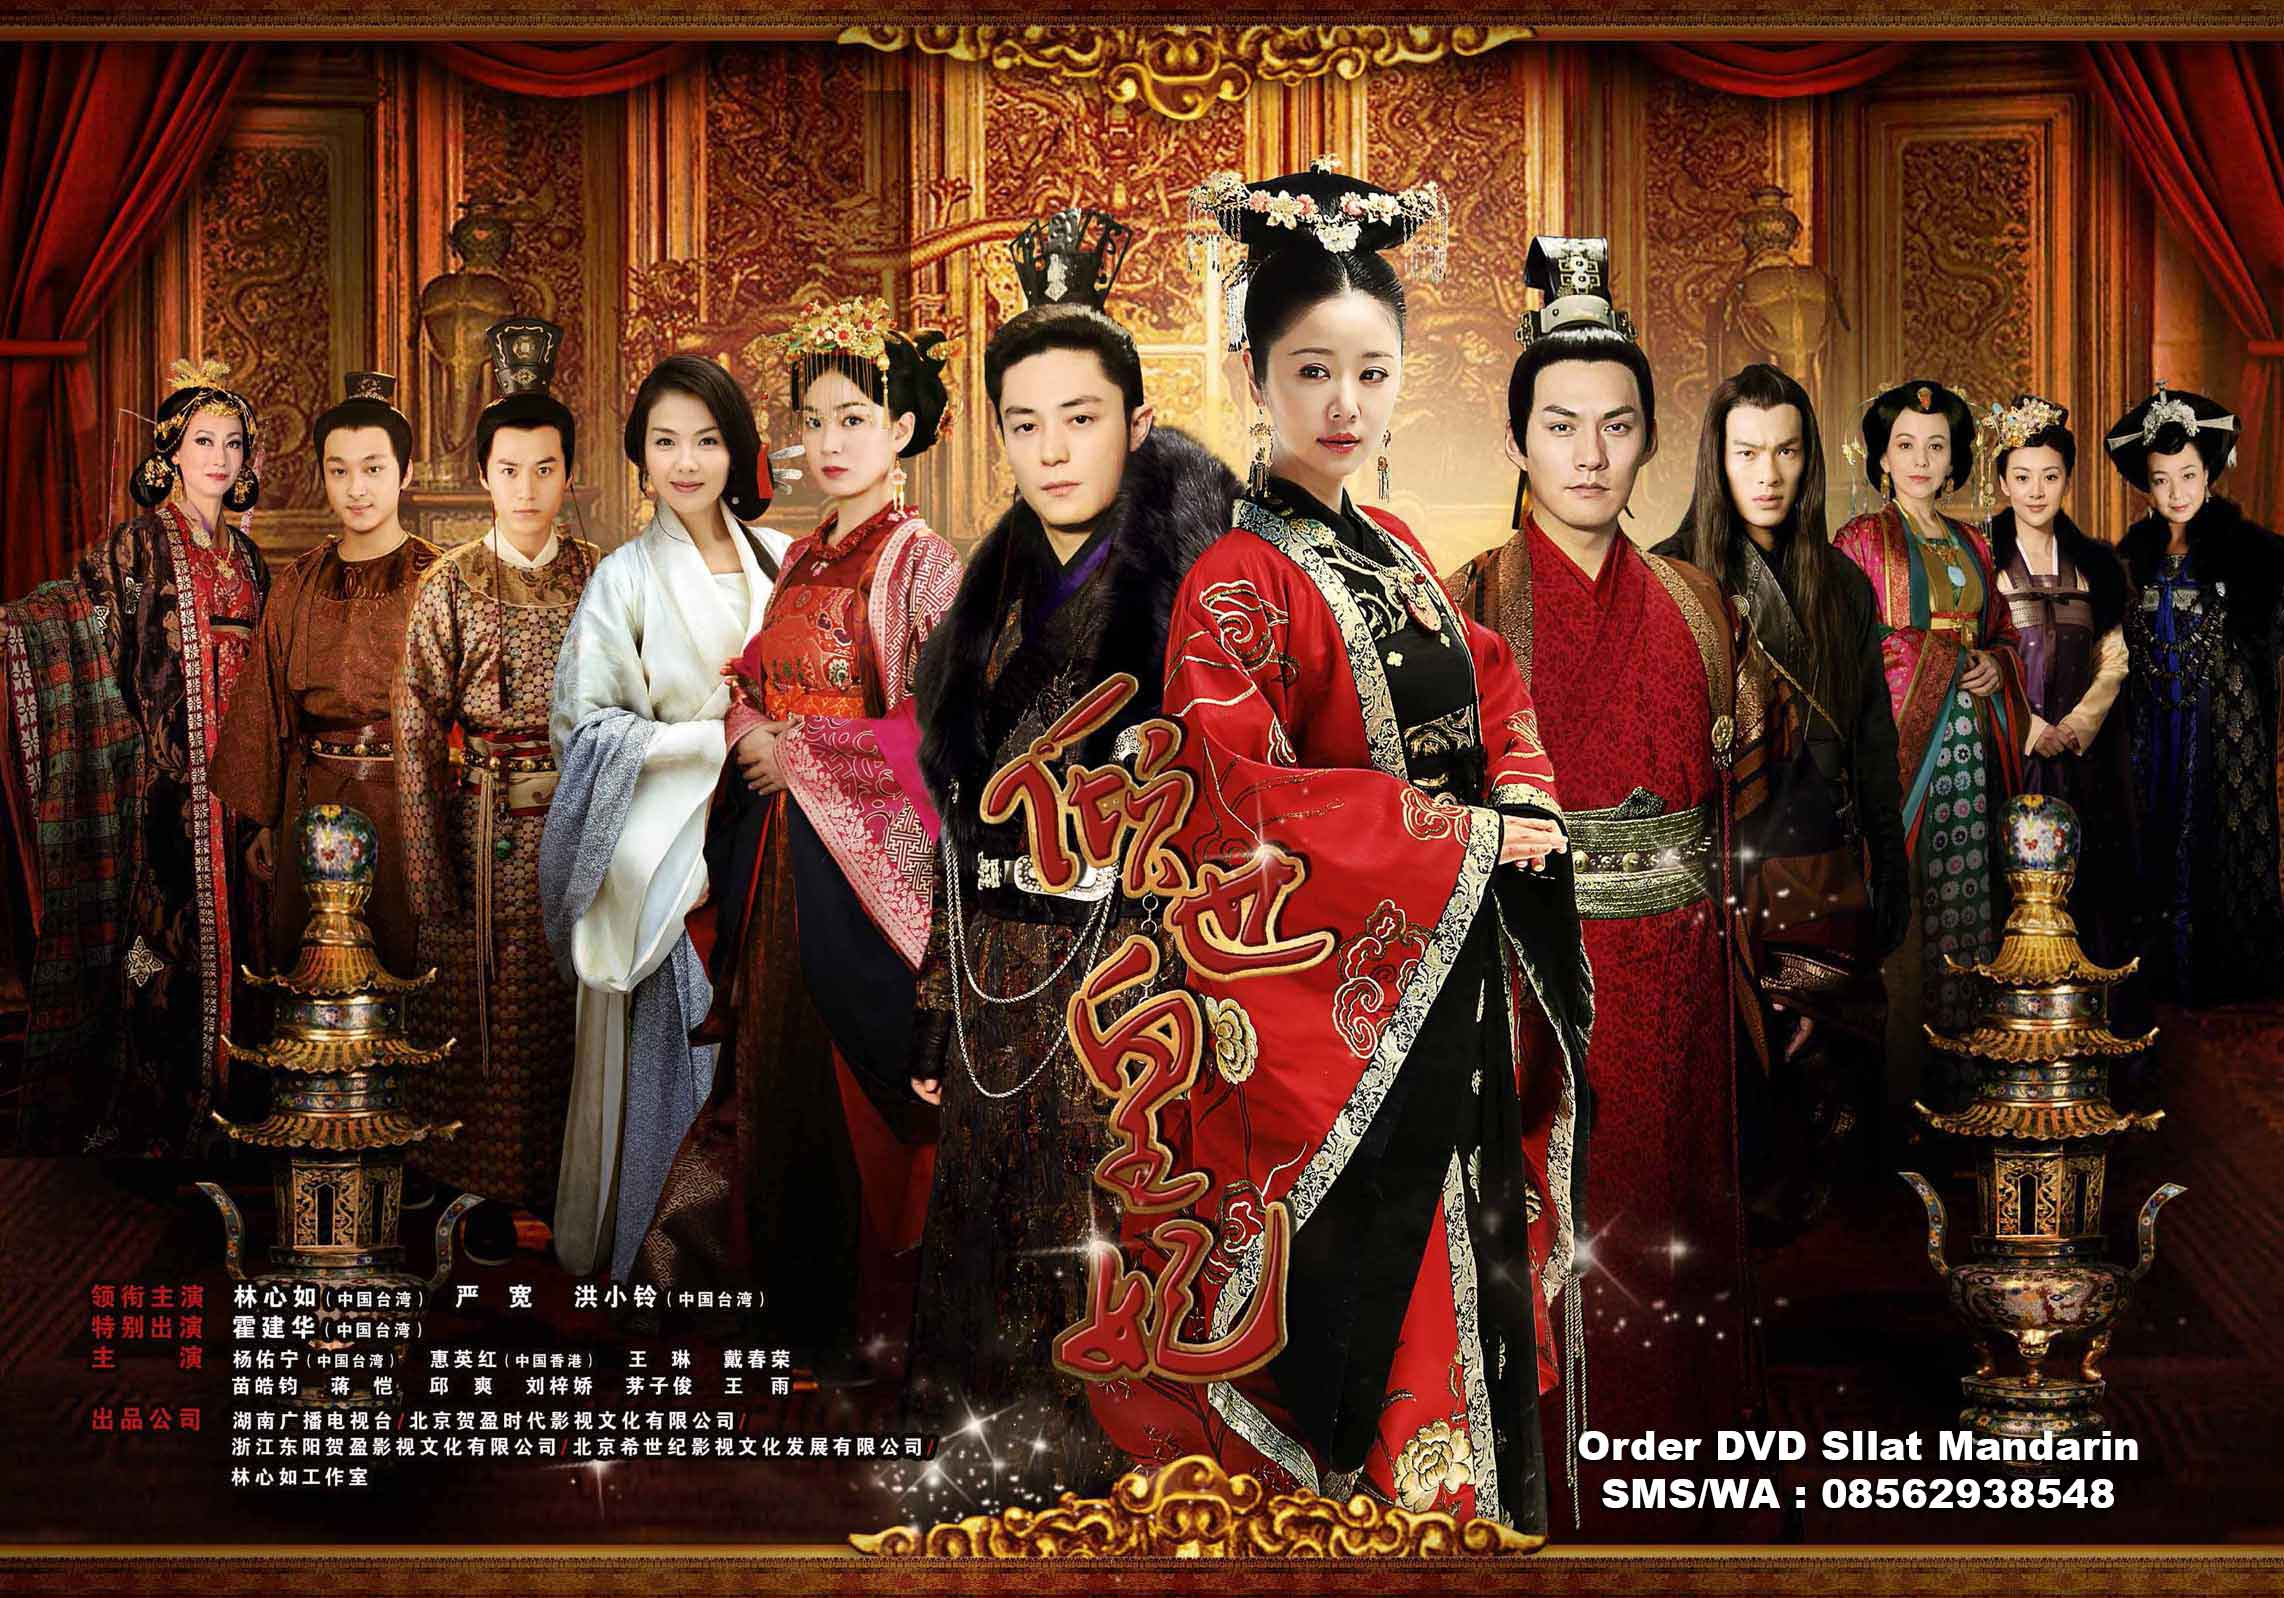 Jual-DVD-The-Glamorous-Imperial-Concubine